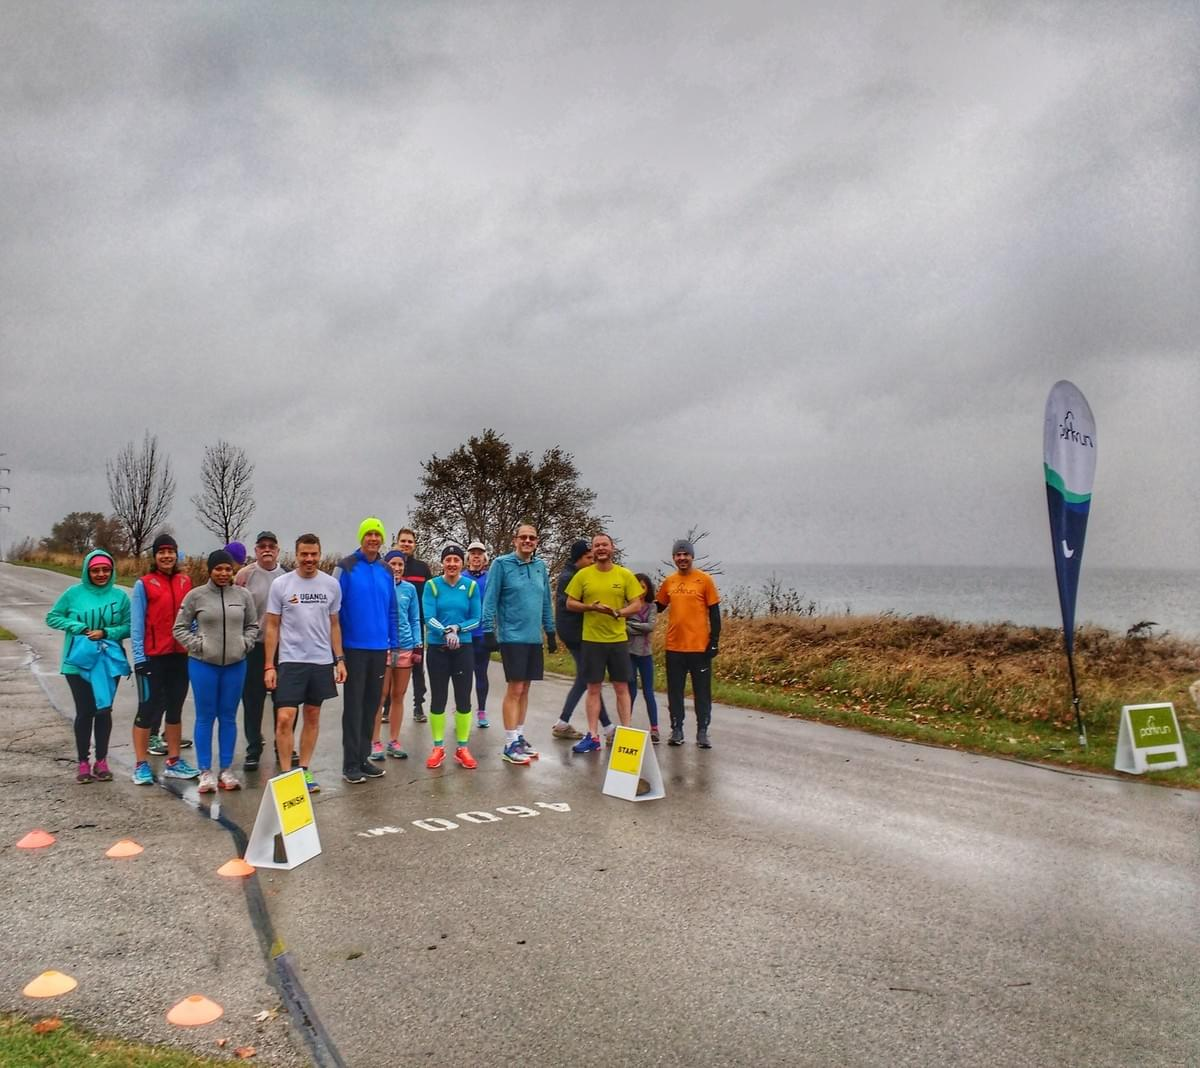 Group photo at the start of Beach Strip parkrun on the shore of Lake Ontario